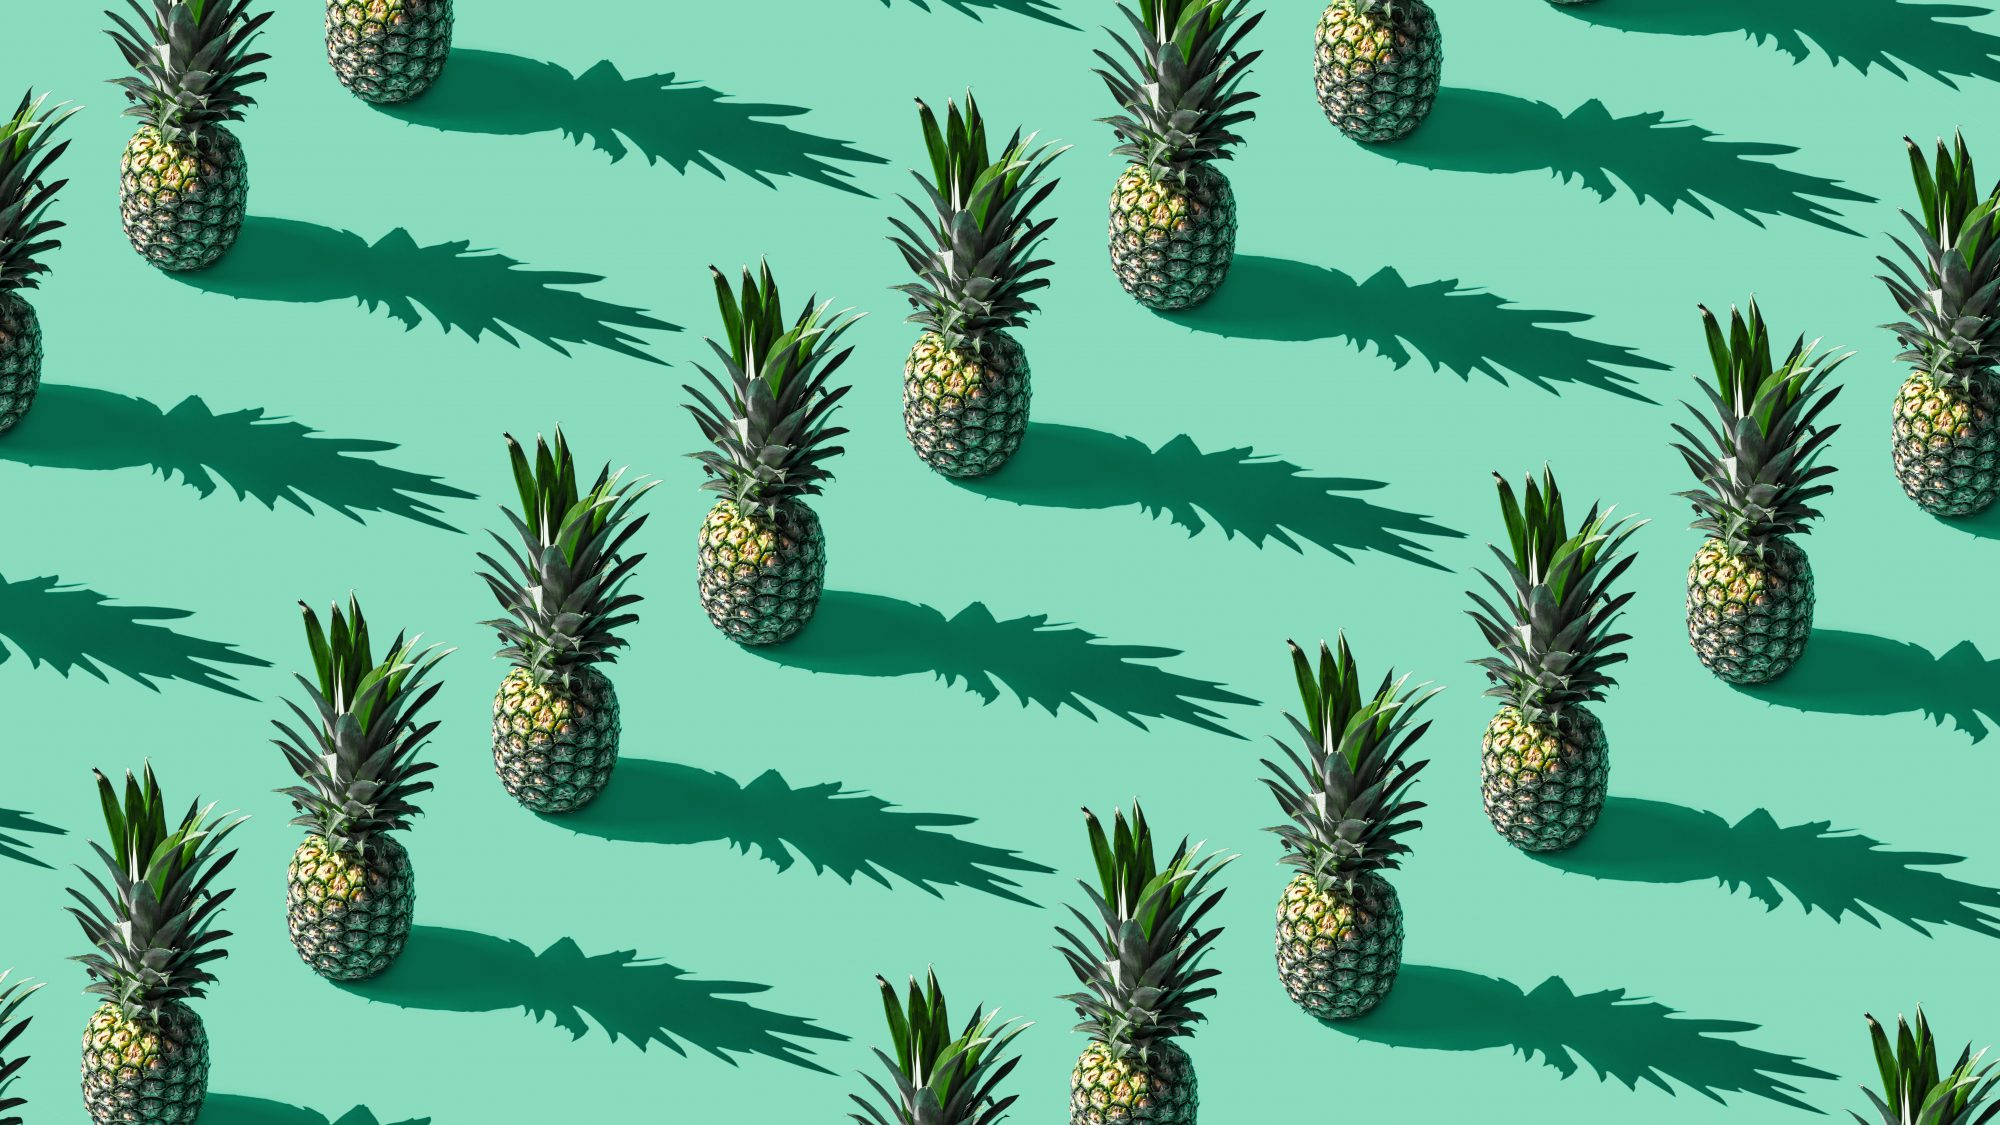 Pineapple-Health-Benefits-GettyImages-1248815268